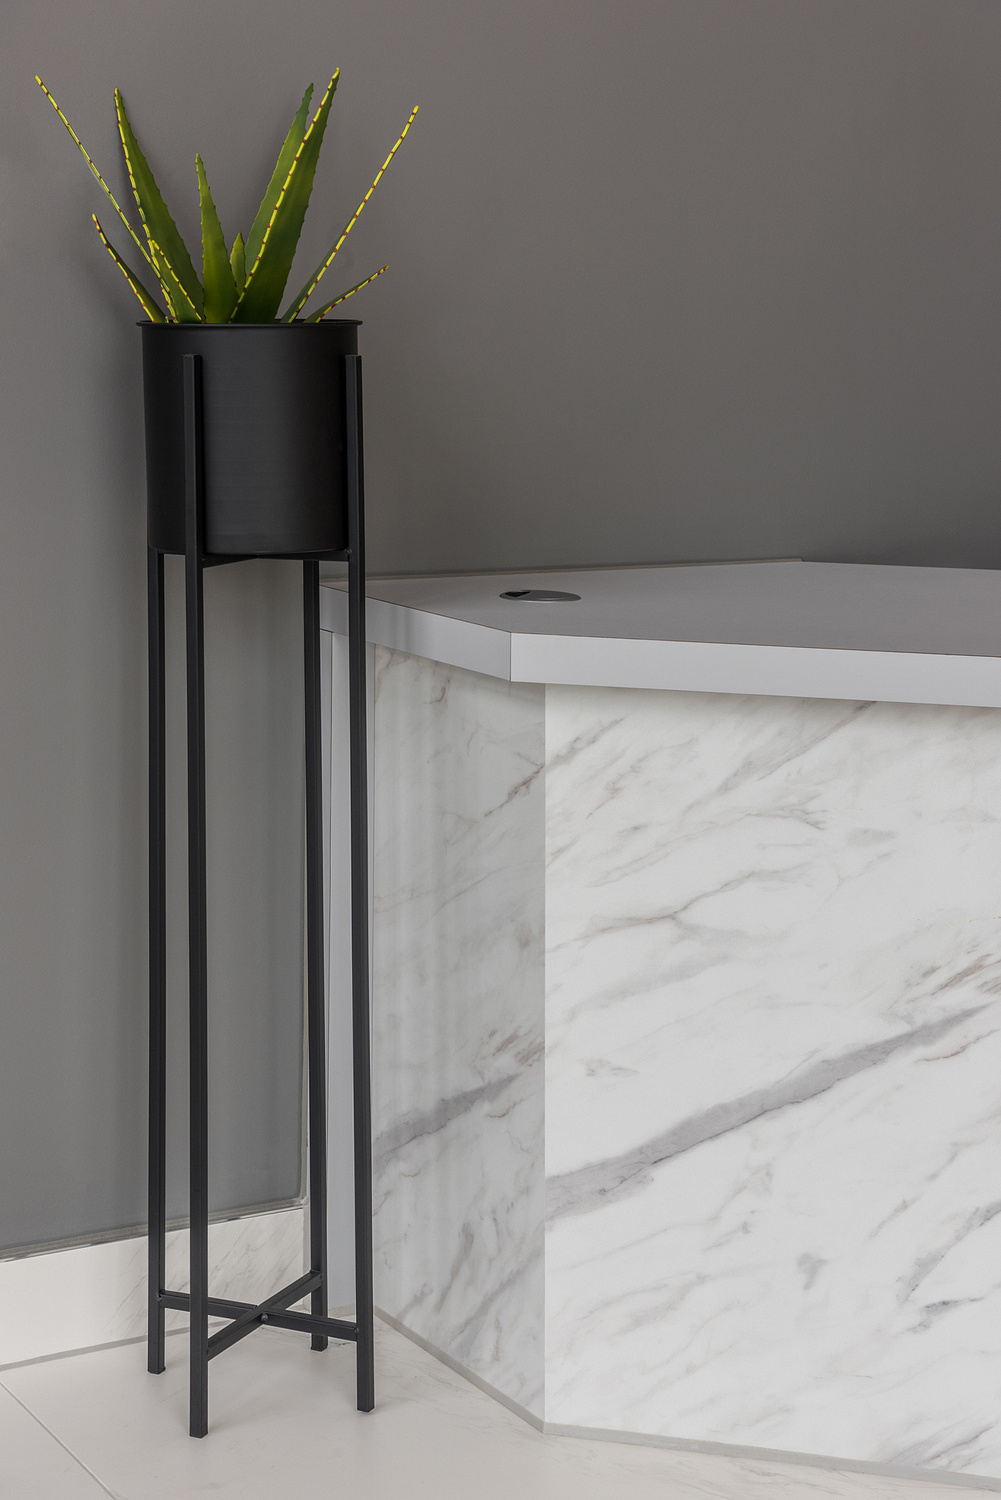 Marble effect desk and plant detail, London